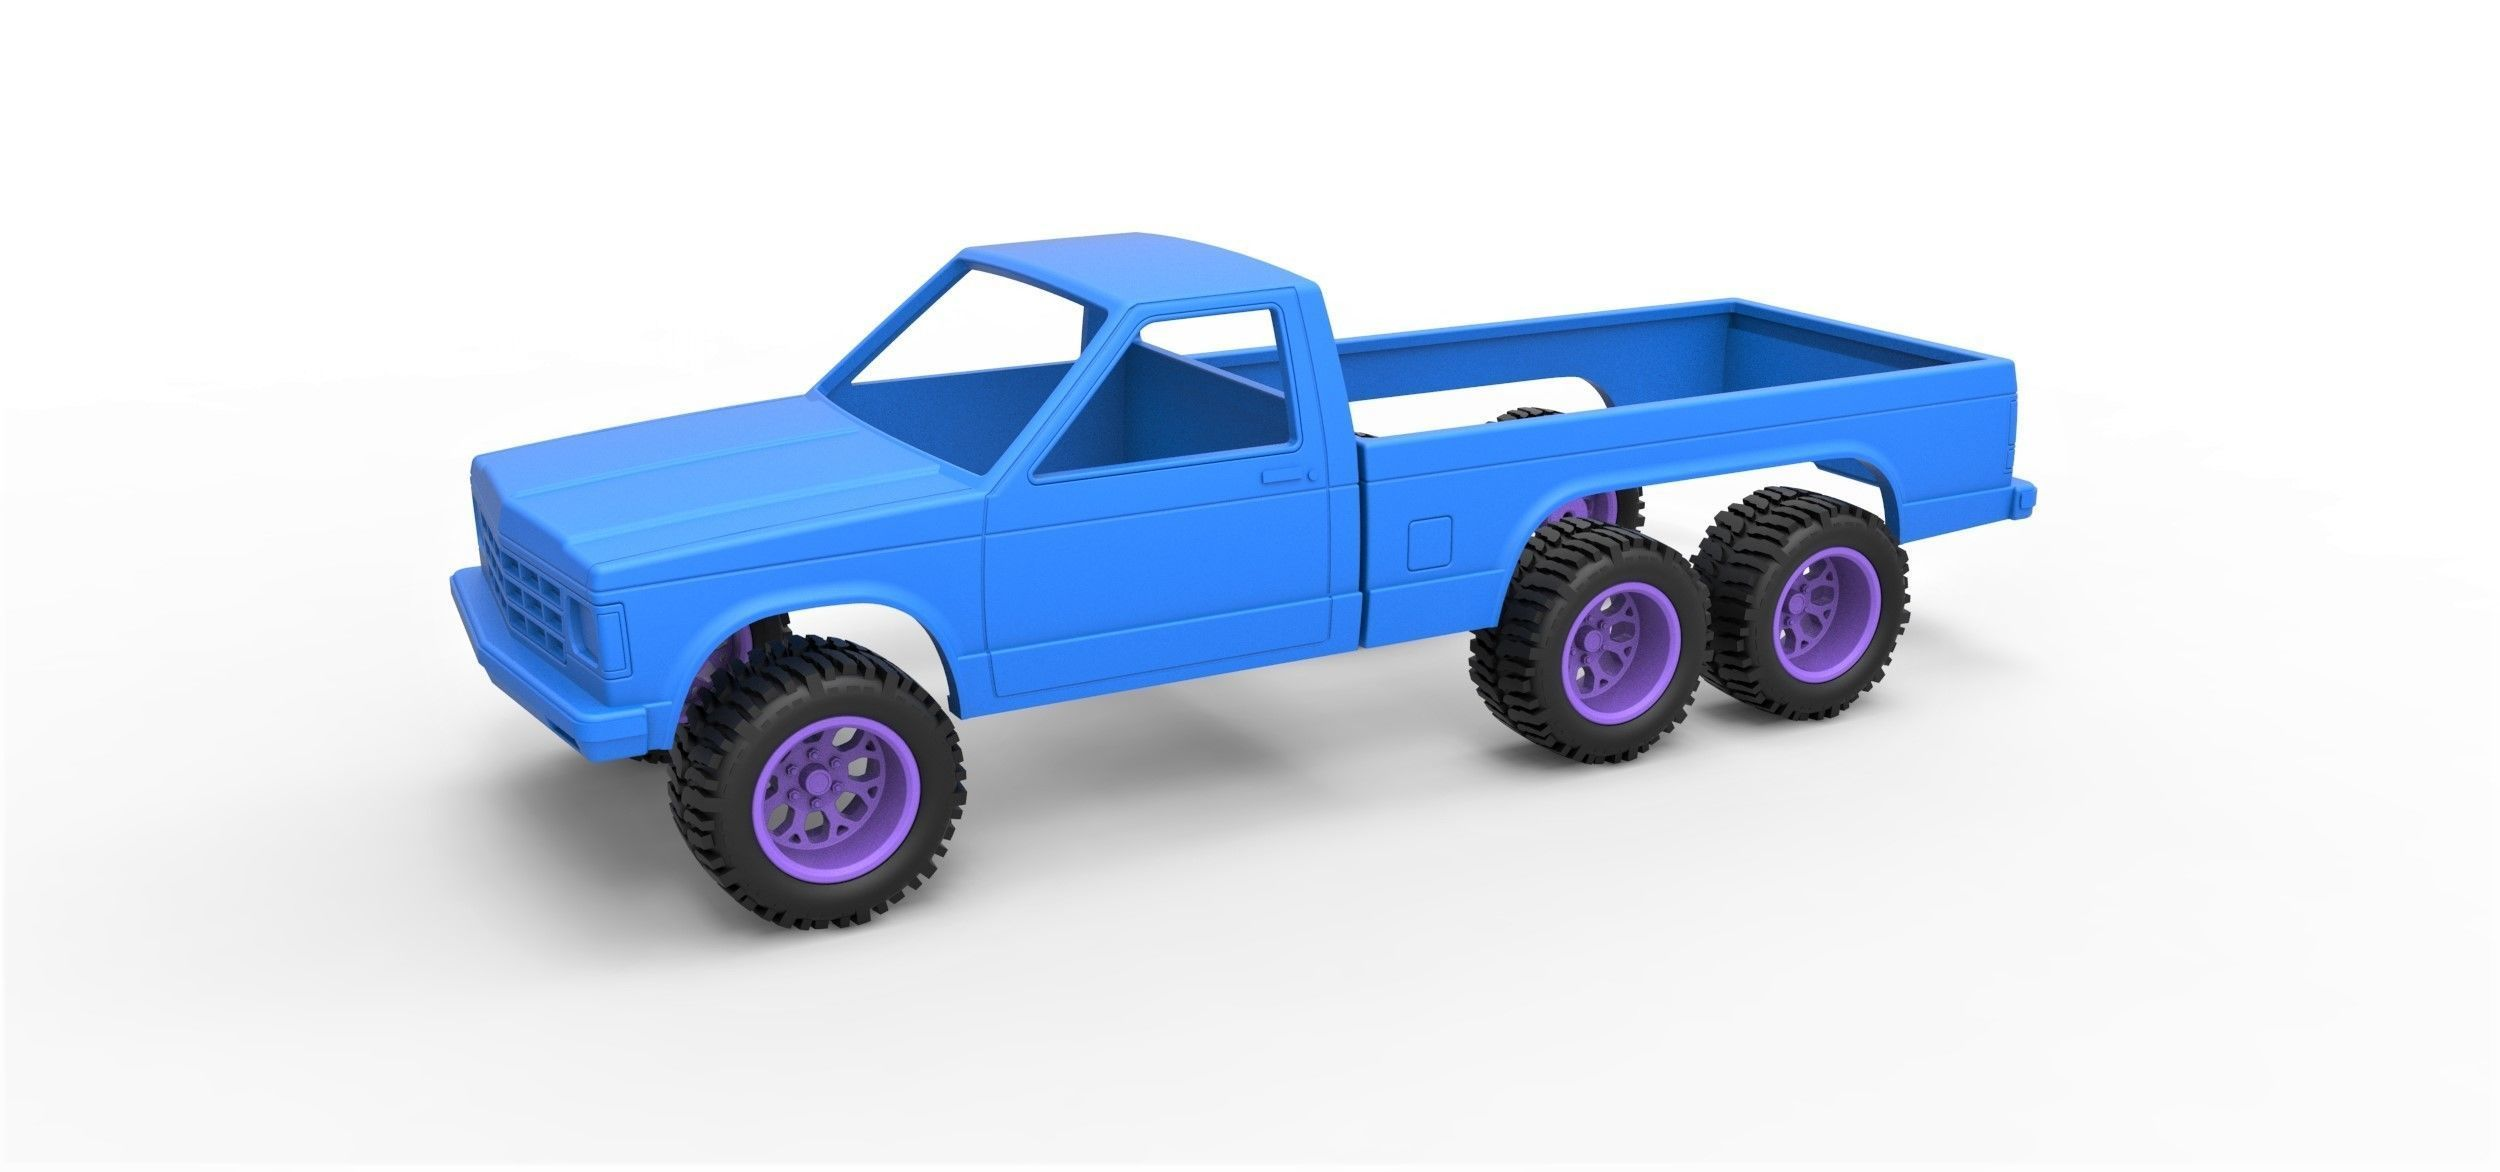 Diecast shell and wheels Chevrolet S10 concept Scale 1 to 25